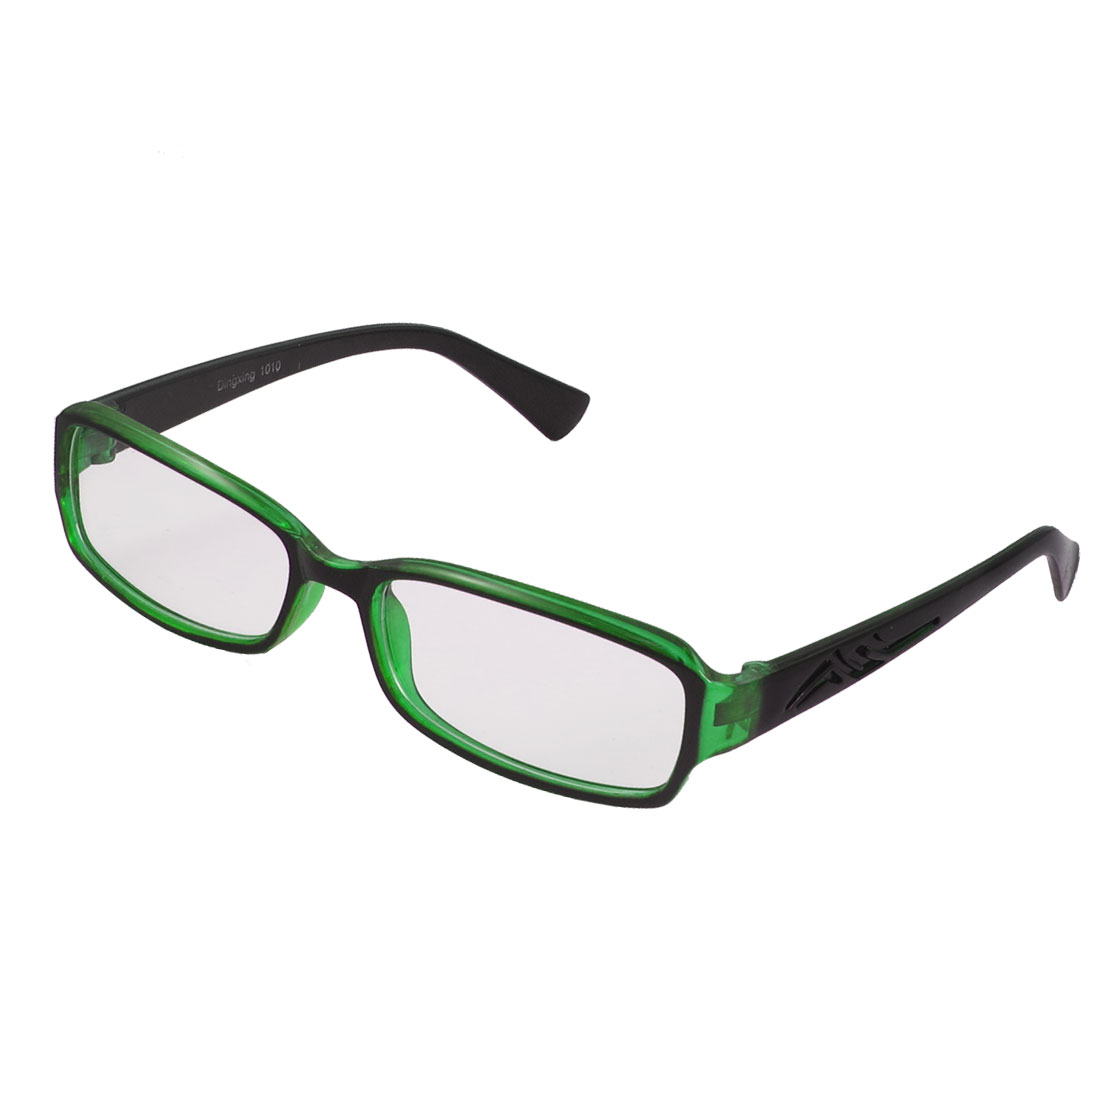 Lady Green Full Frame Carved Arm Plain Plano Eyeglass